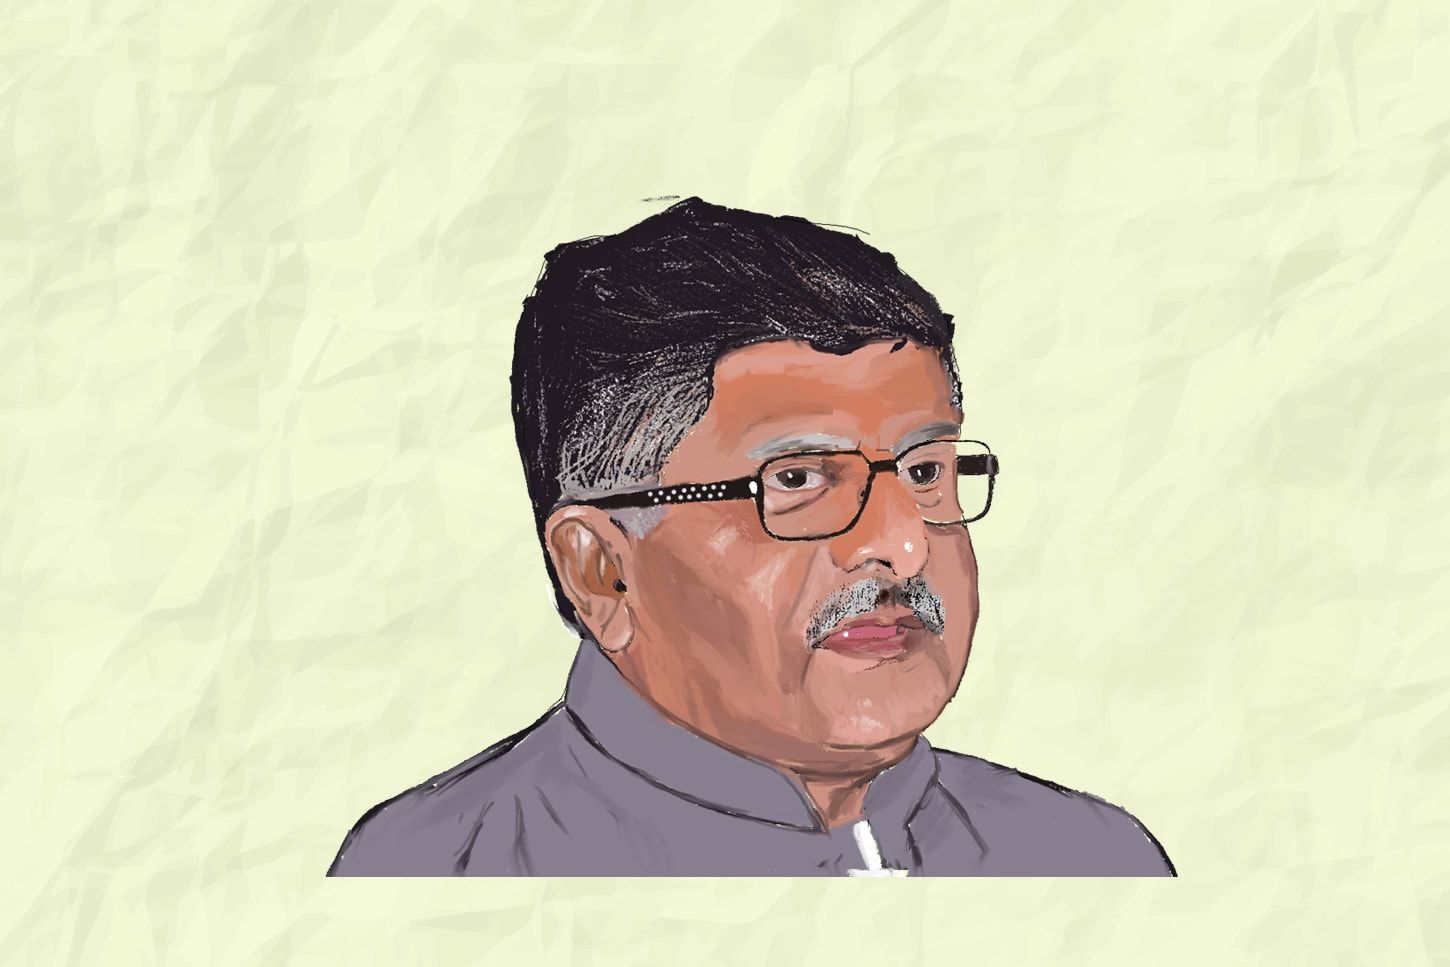 Why did Ravi Shankar Prasad make that comment?